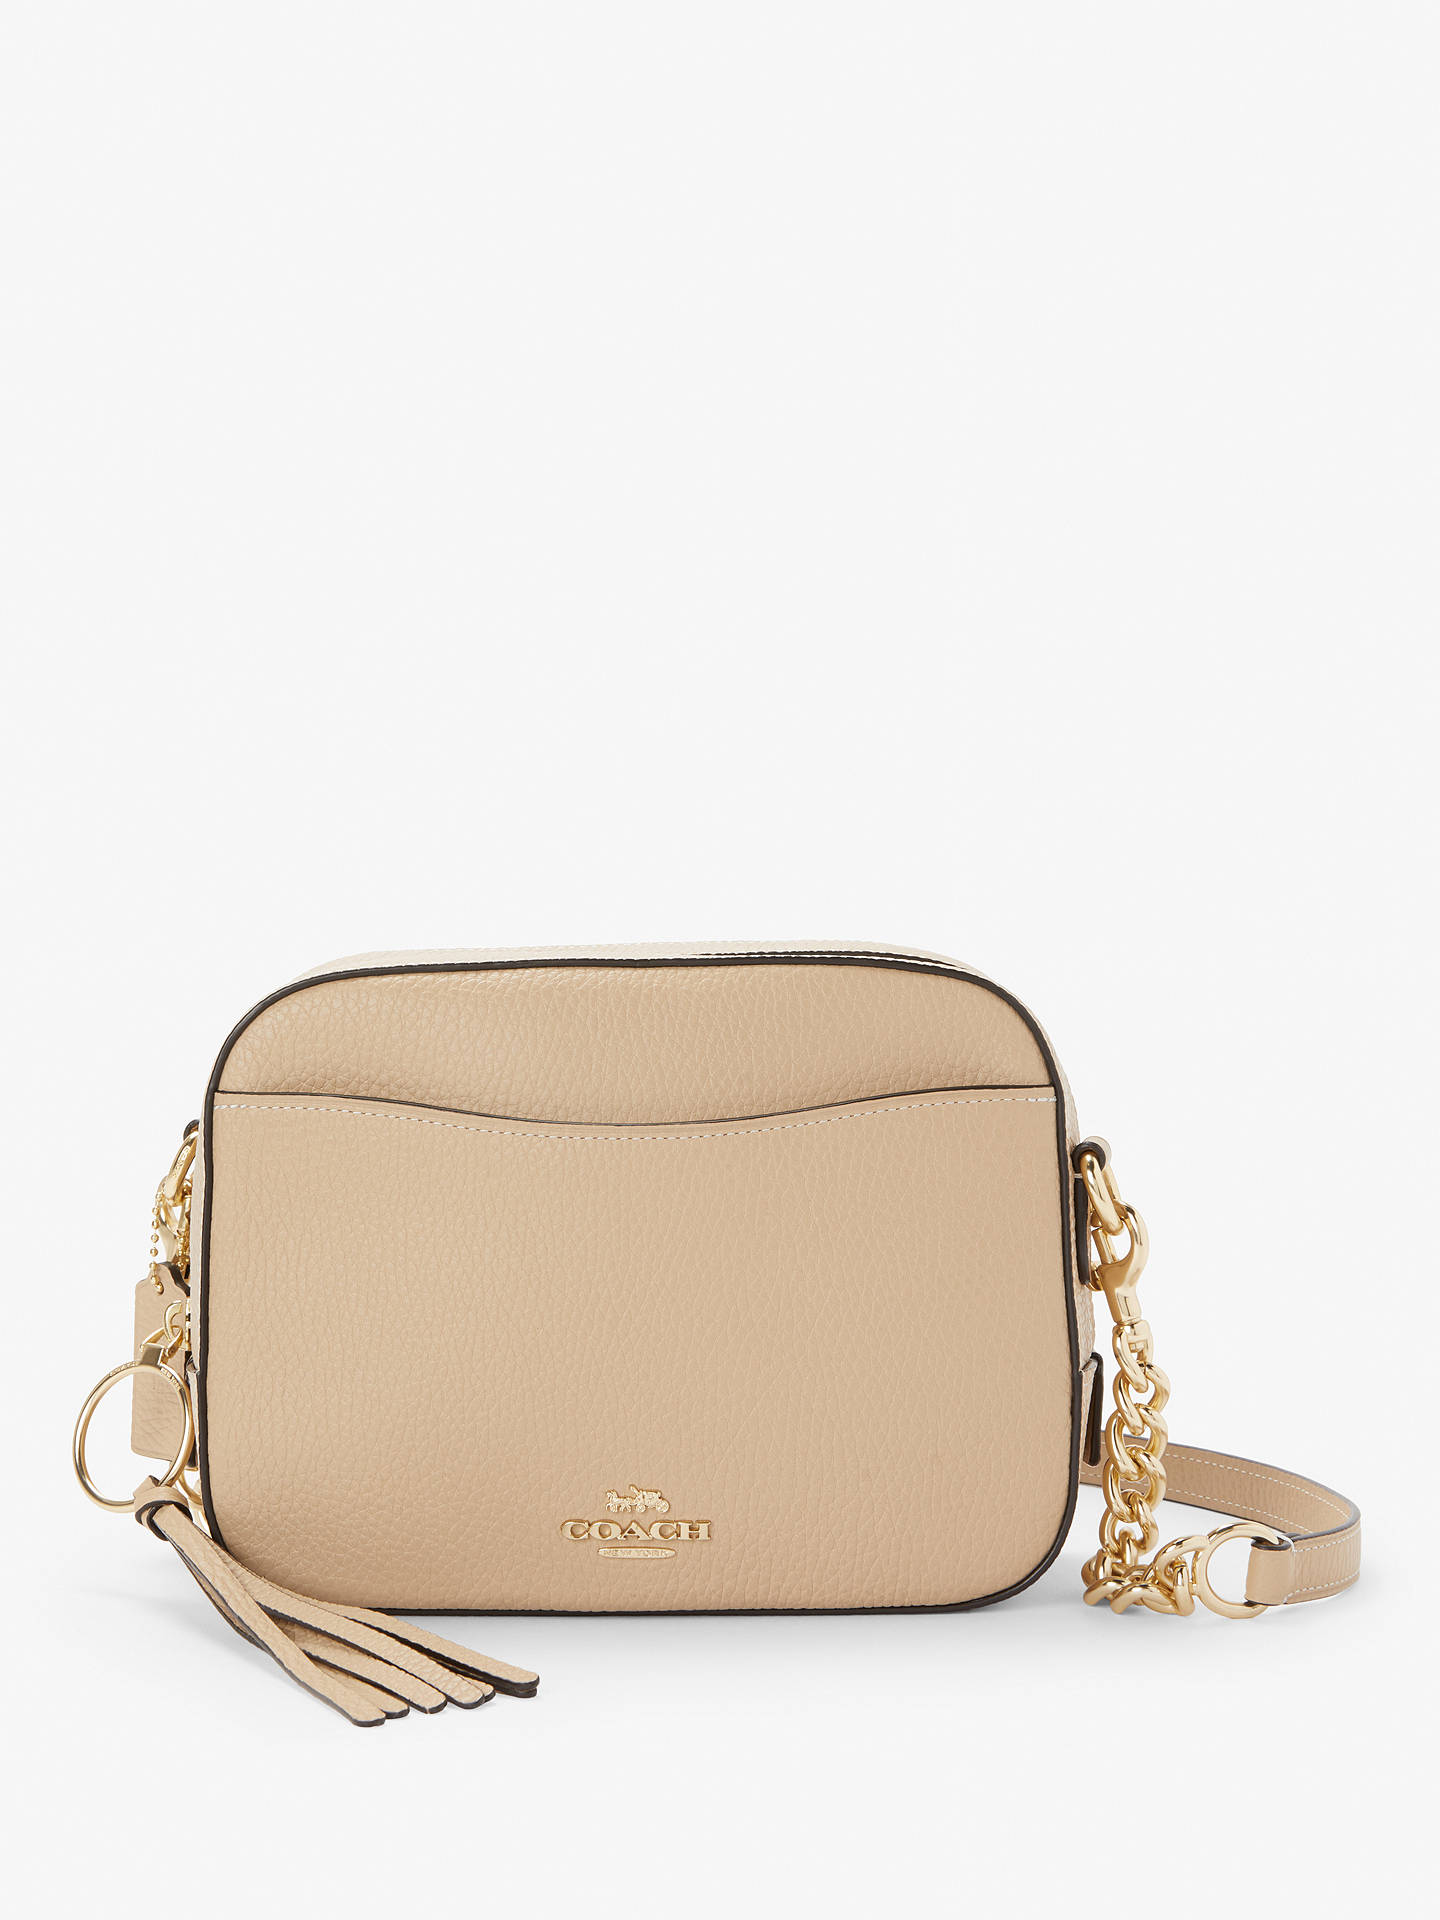 d7cc35a3b2c Buy Coach Leather Cross Body Camera Bag, Beechwood Online at johnlewis.com  ...